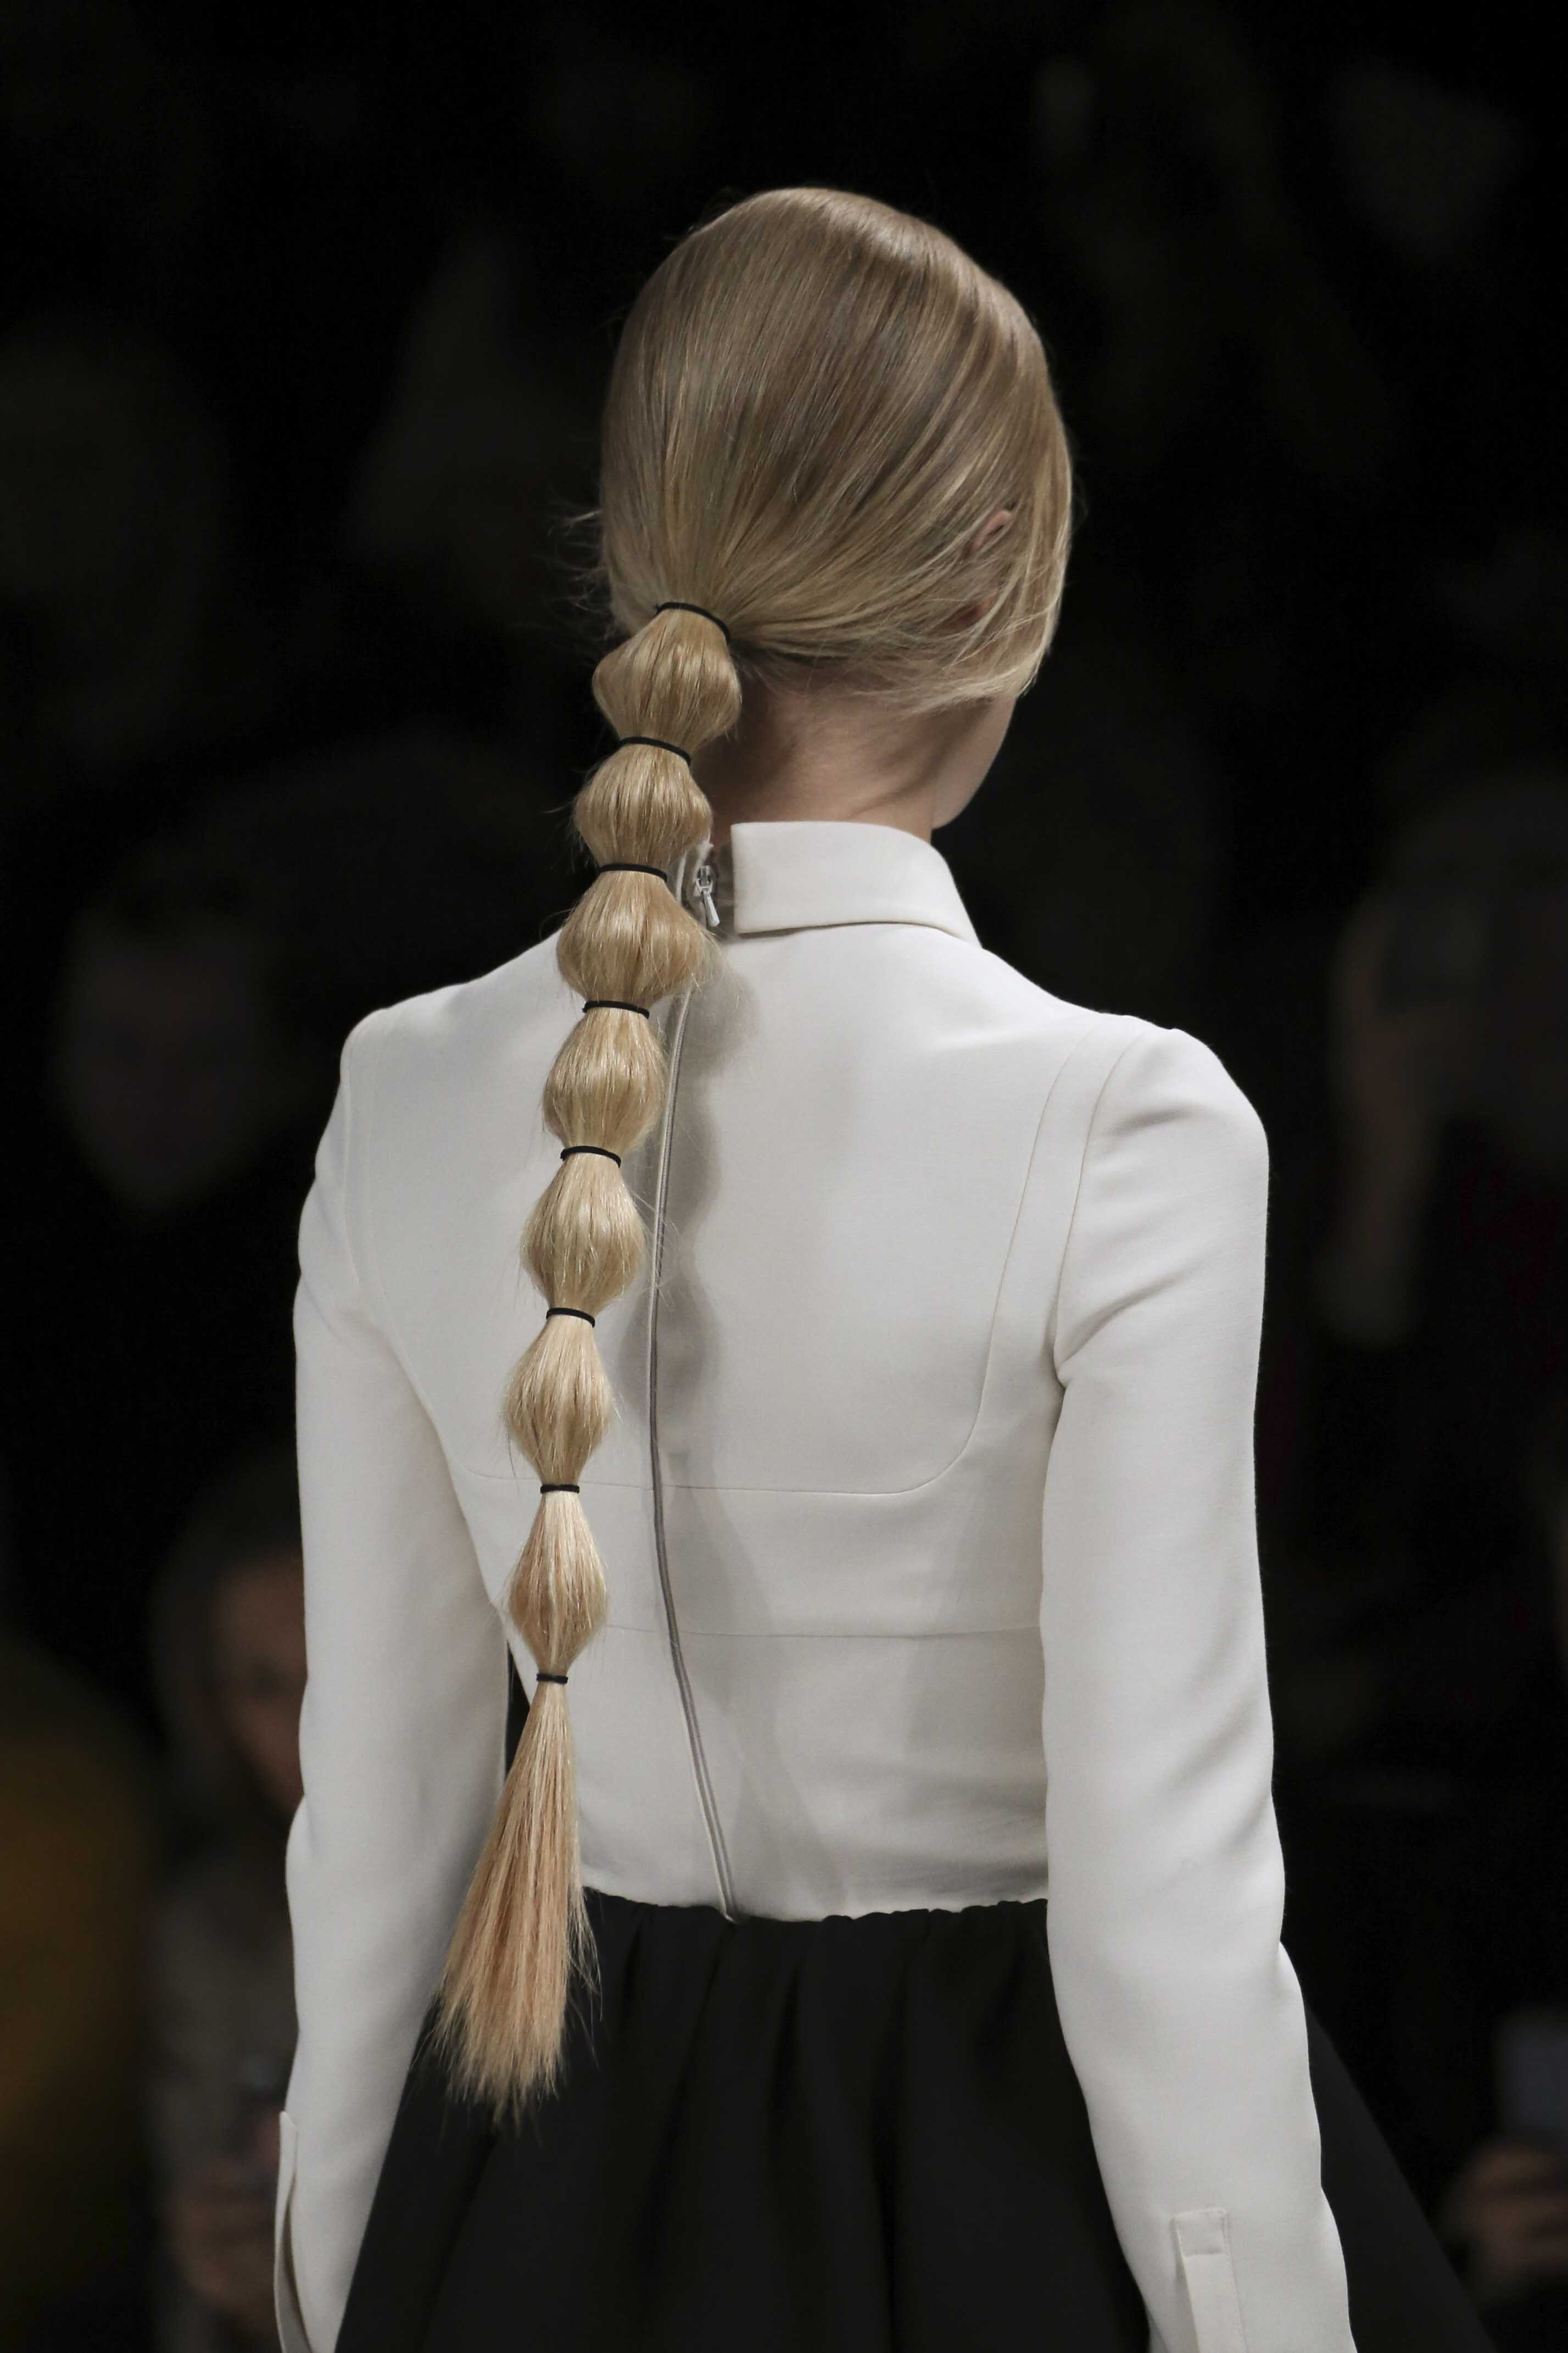 bubble ponytails are a fashionable quirky hairstyles